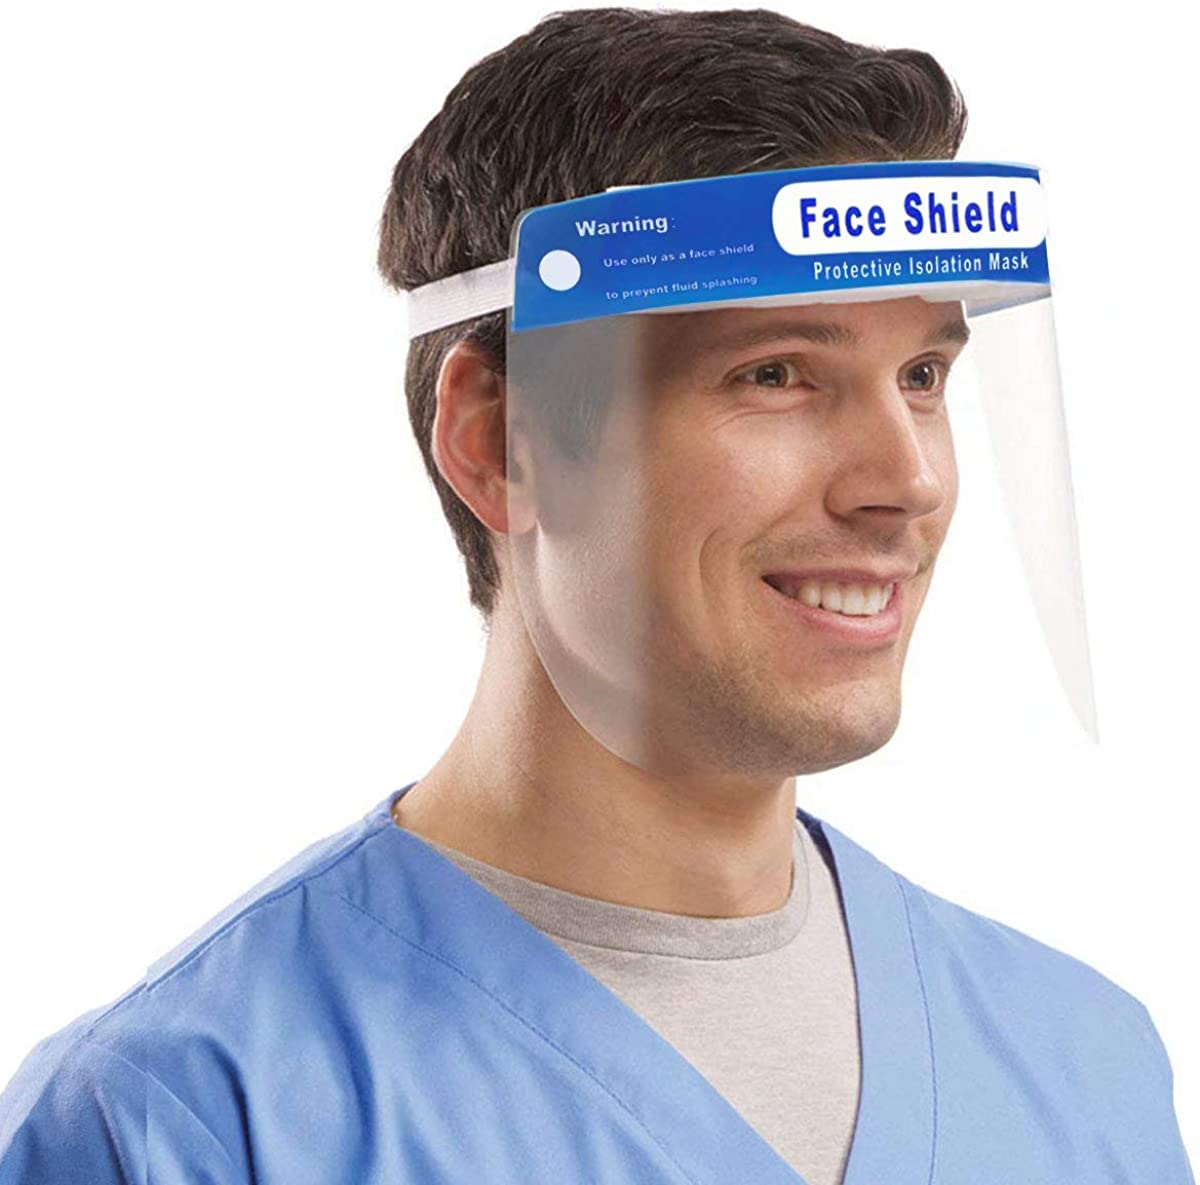 Disposable Isolation Face Shield Direct Dust /& Splash Protection Head-Mounted Transparent Protective Visor for Lab//Household//Kitchen//Dental